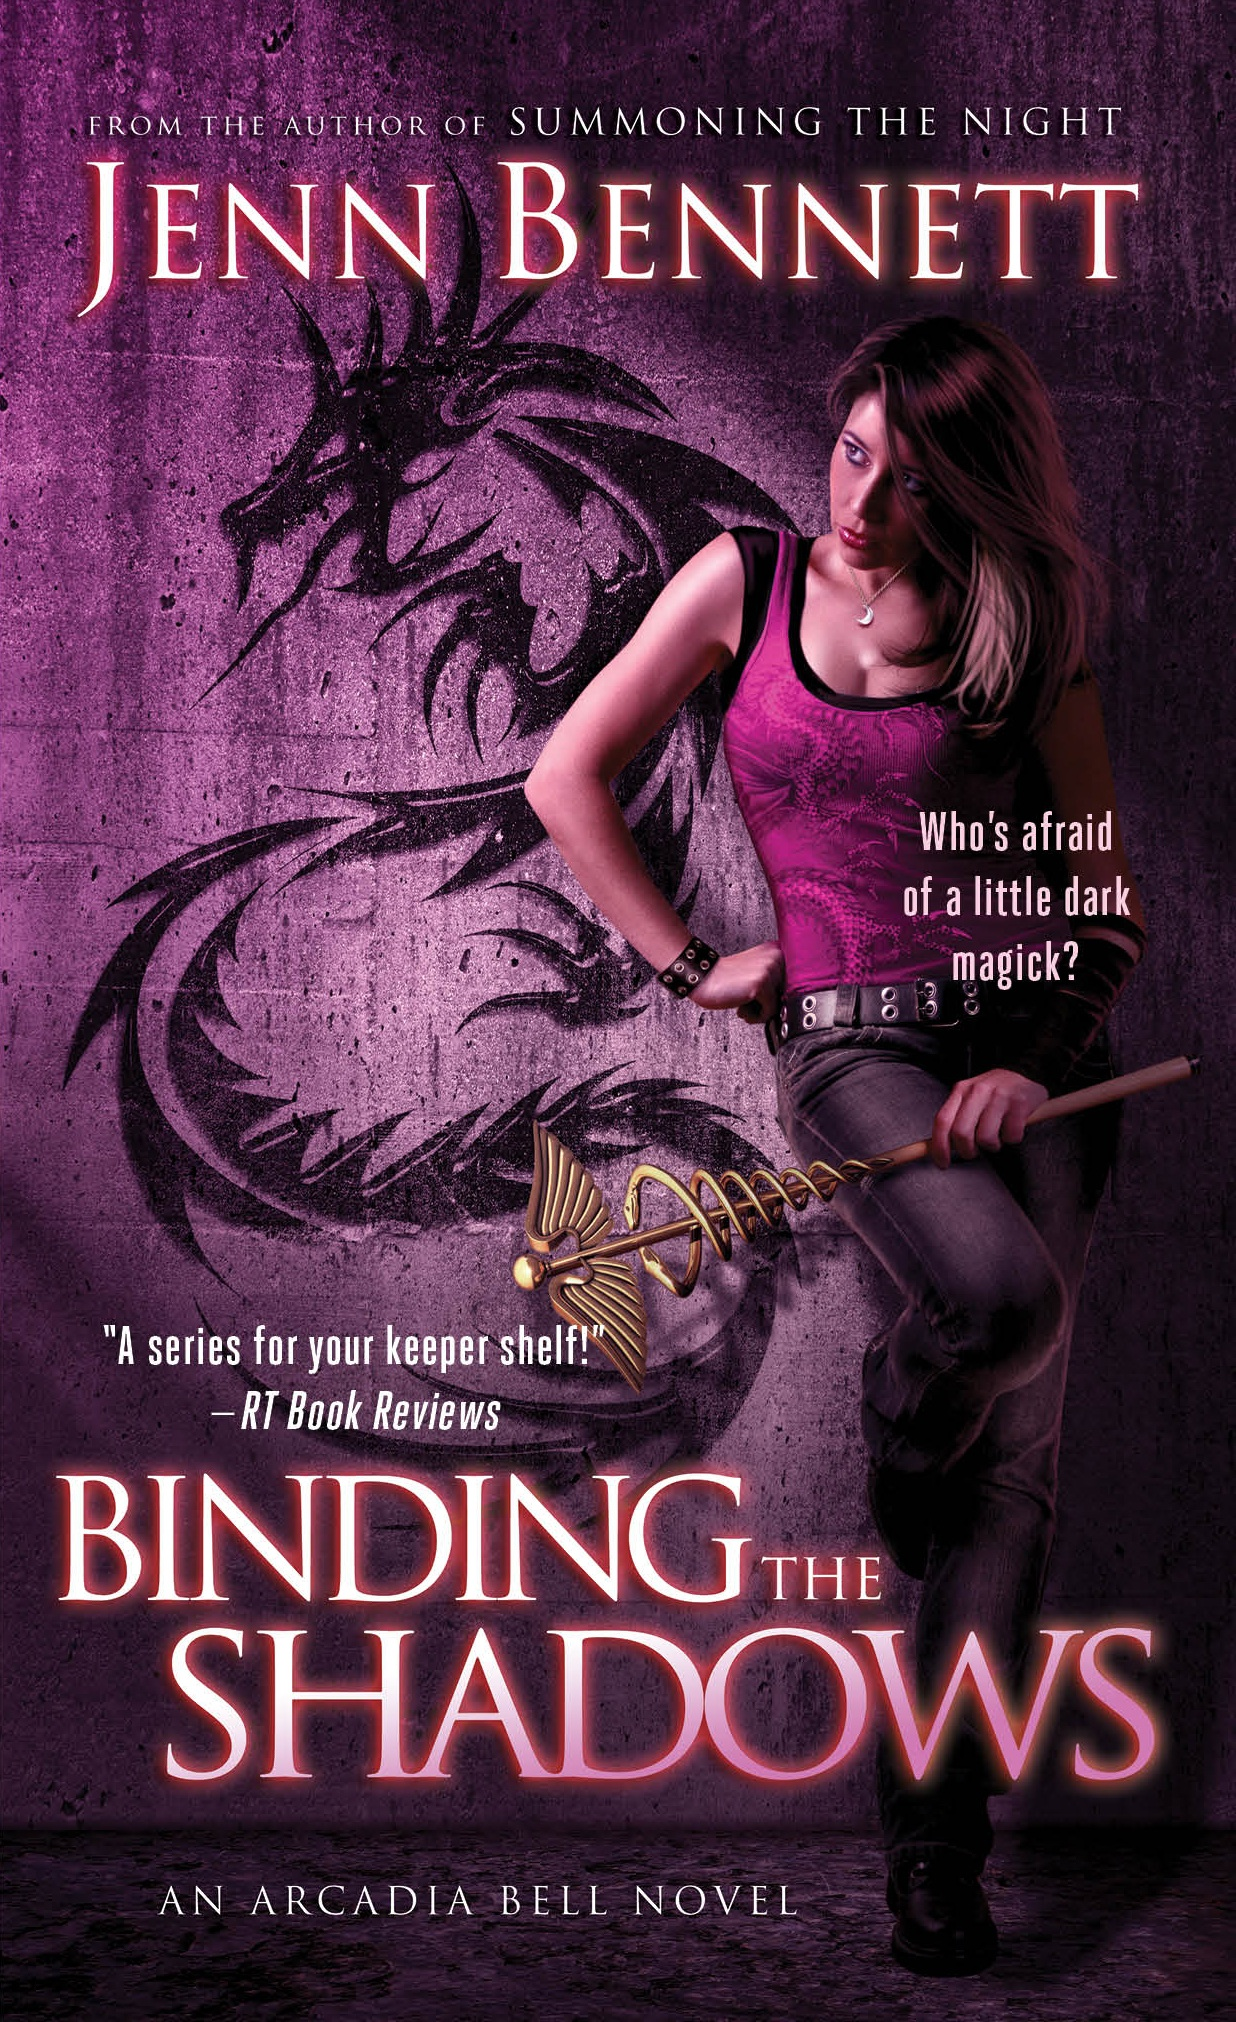 BINDING-THE-SHADOWS-cover